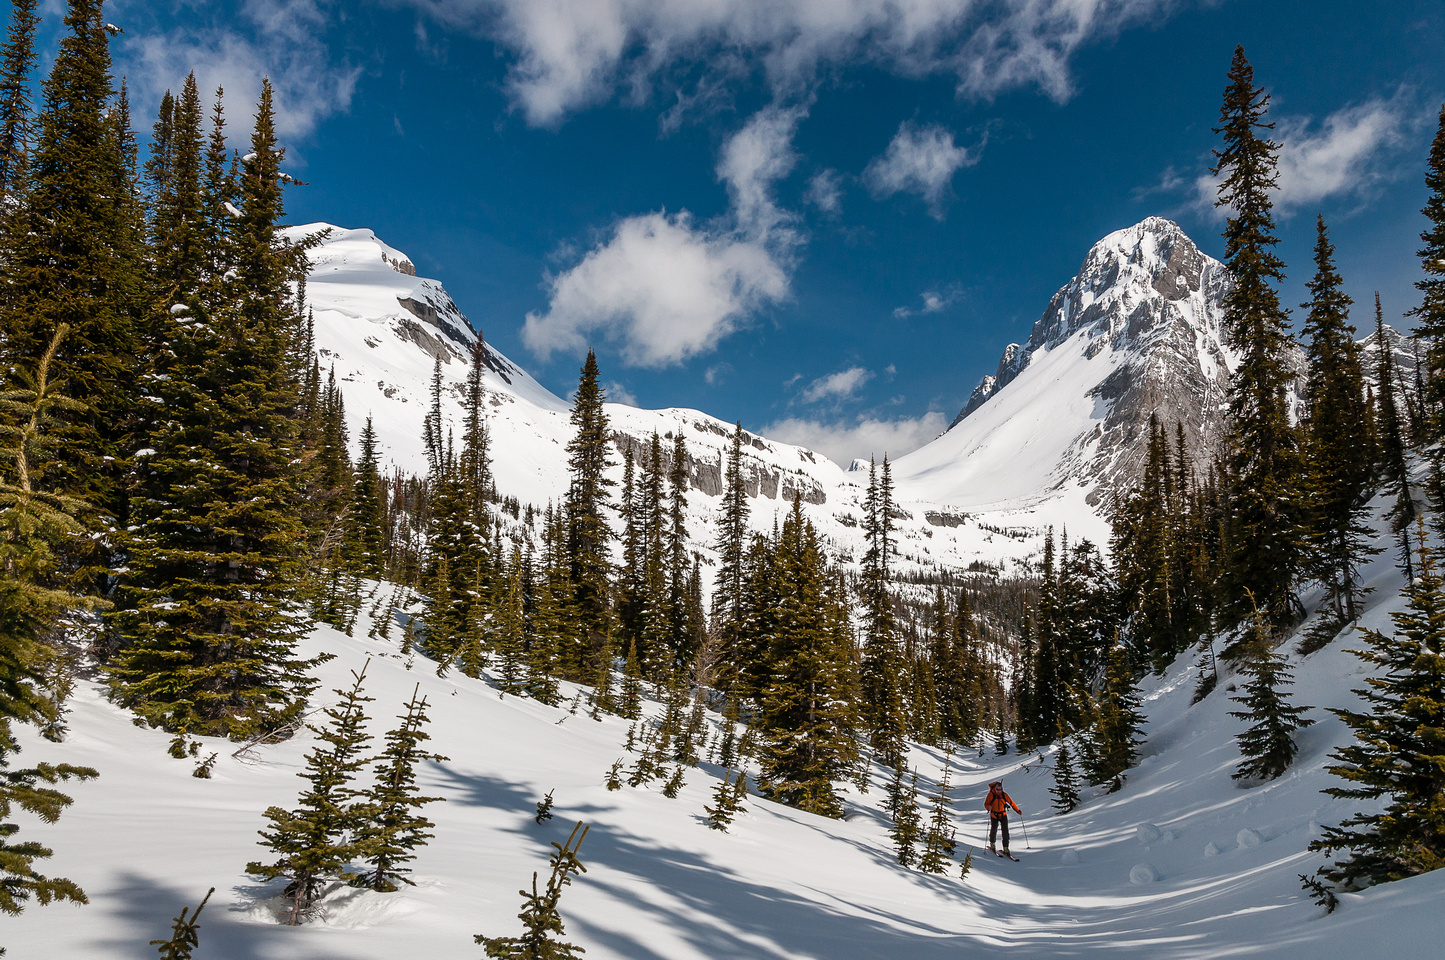 Ascending a draw towards Burstall Pass, looking back at Snow Peak (L) and Mount Birdwood (R).